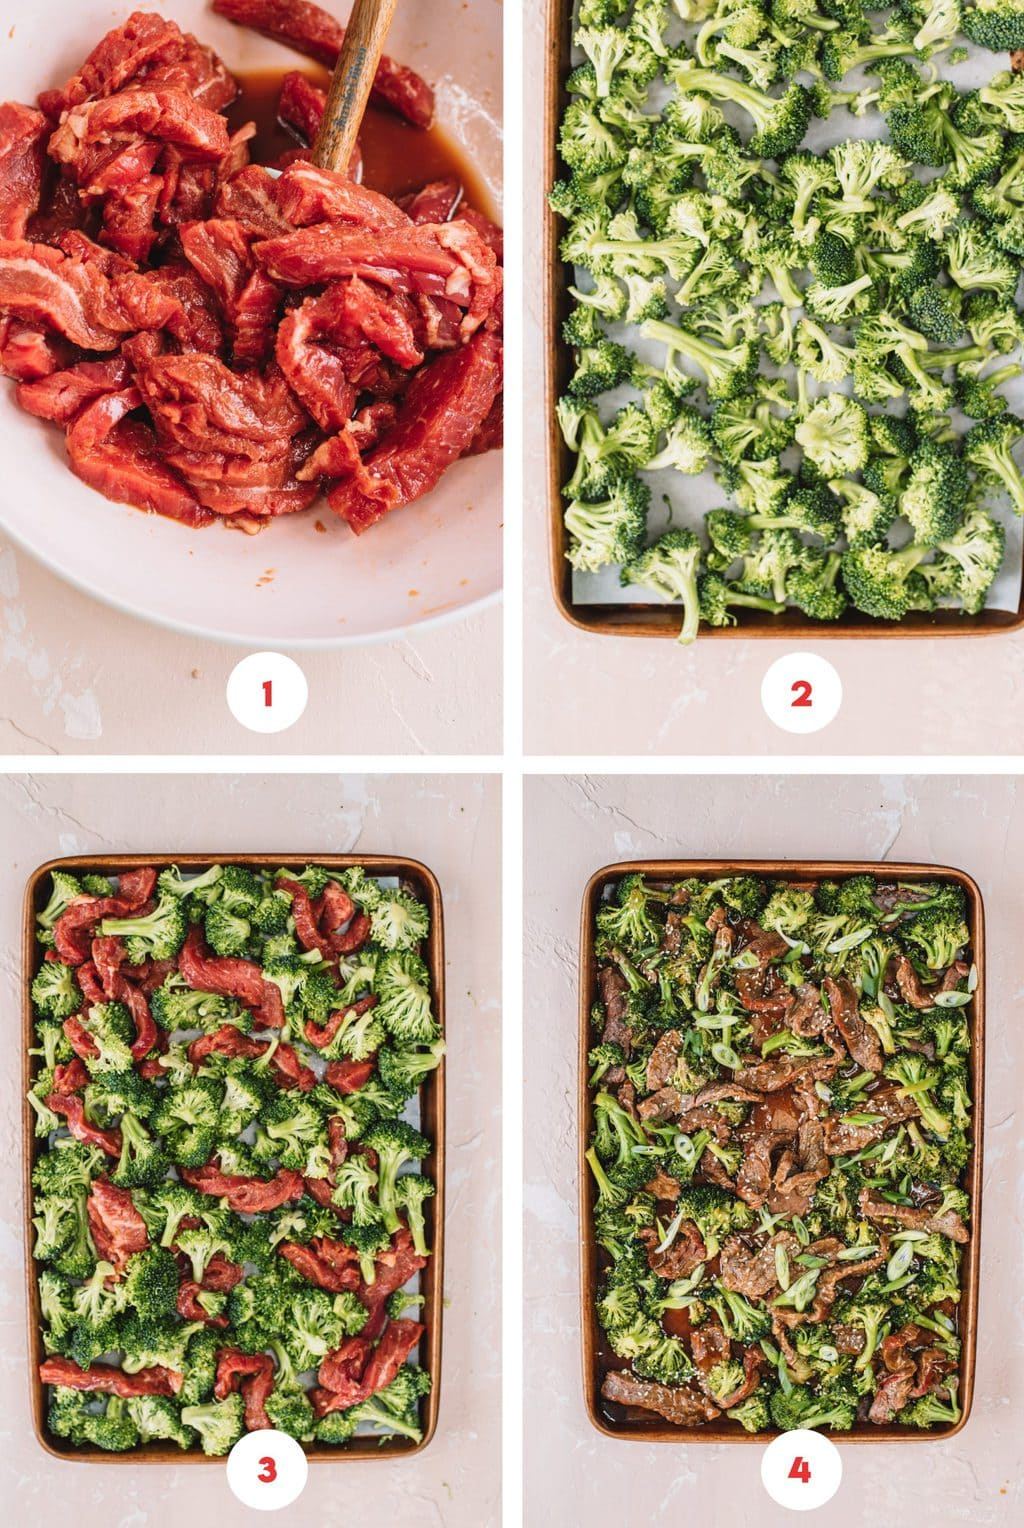 Step by step process on how to make sheet pan beef and broccoli.